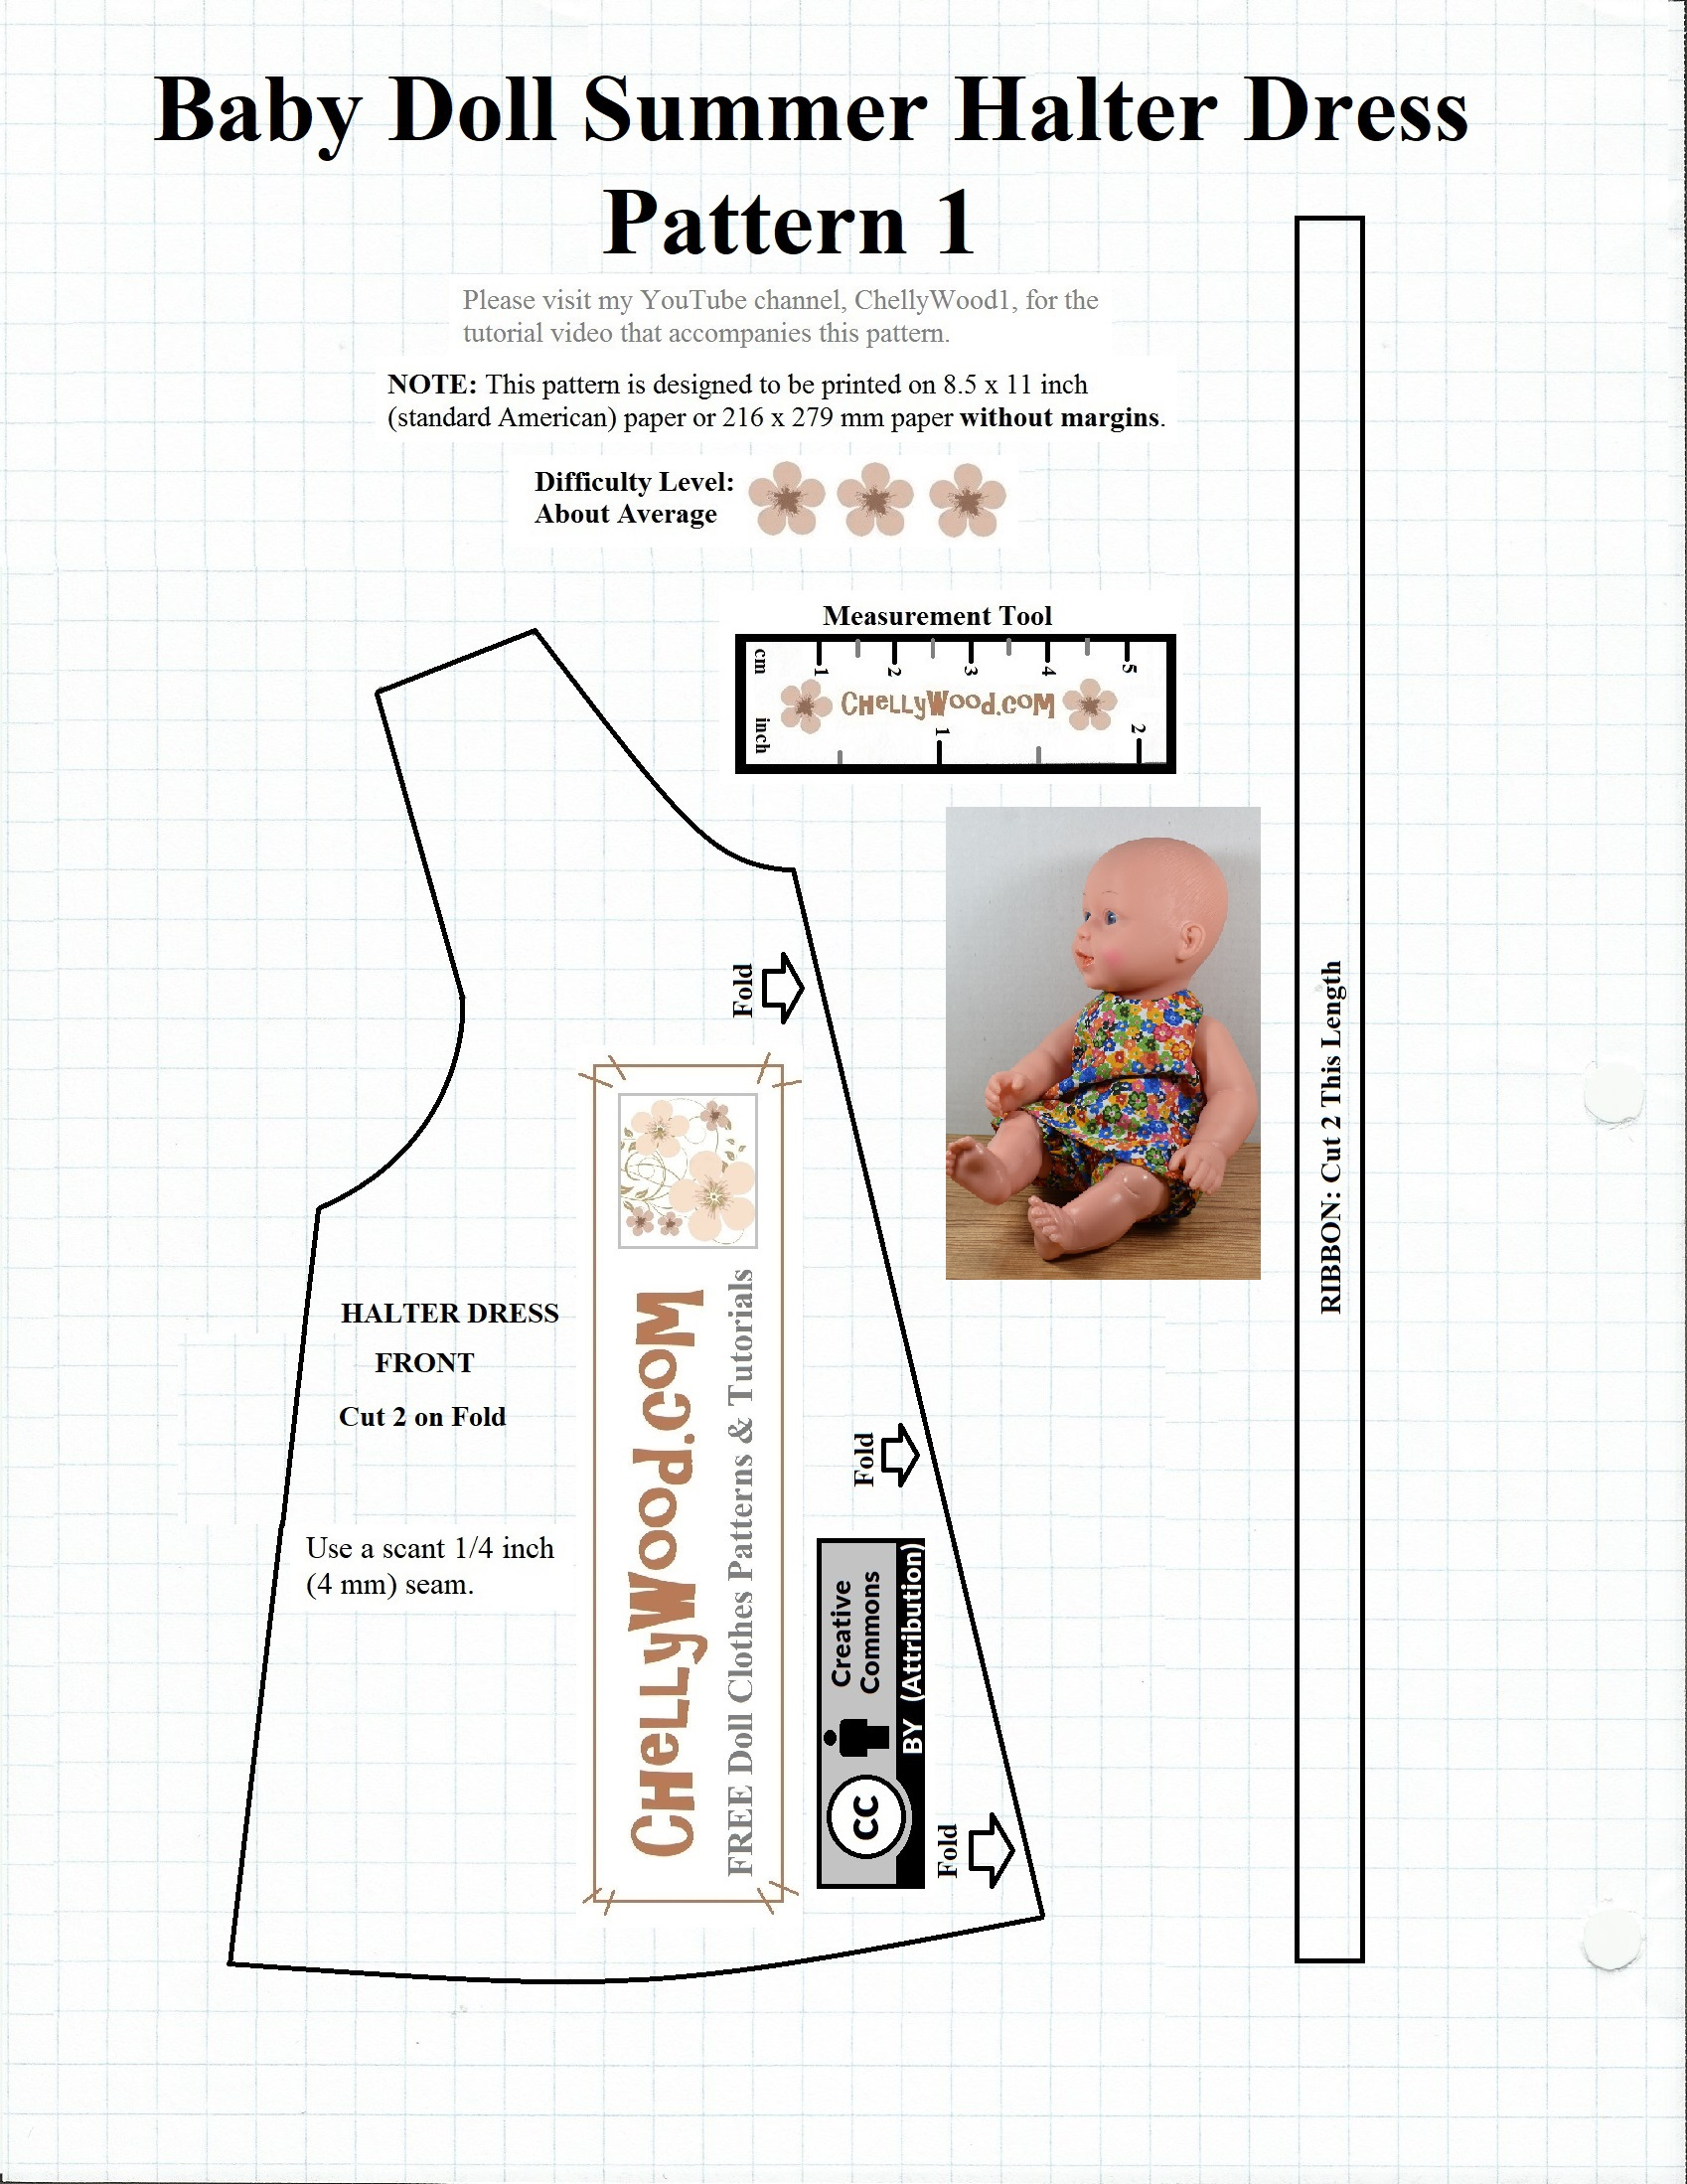 Free #sewing Pattern For Baby #dolls @ Chellywood #crafts - Free Printable Sewing Patterns